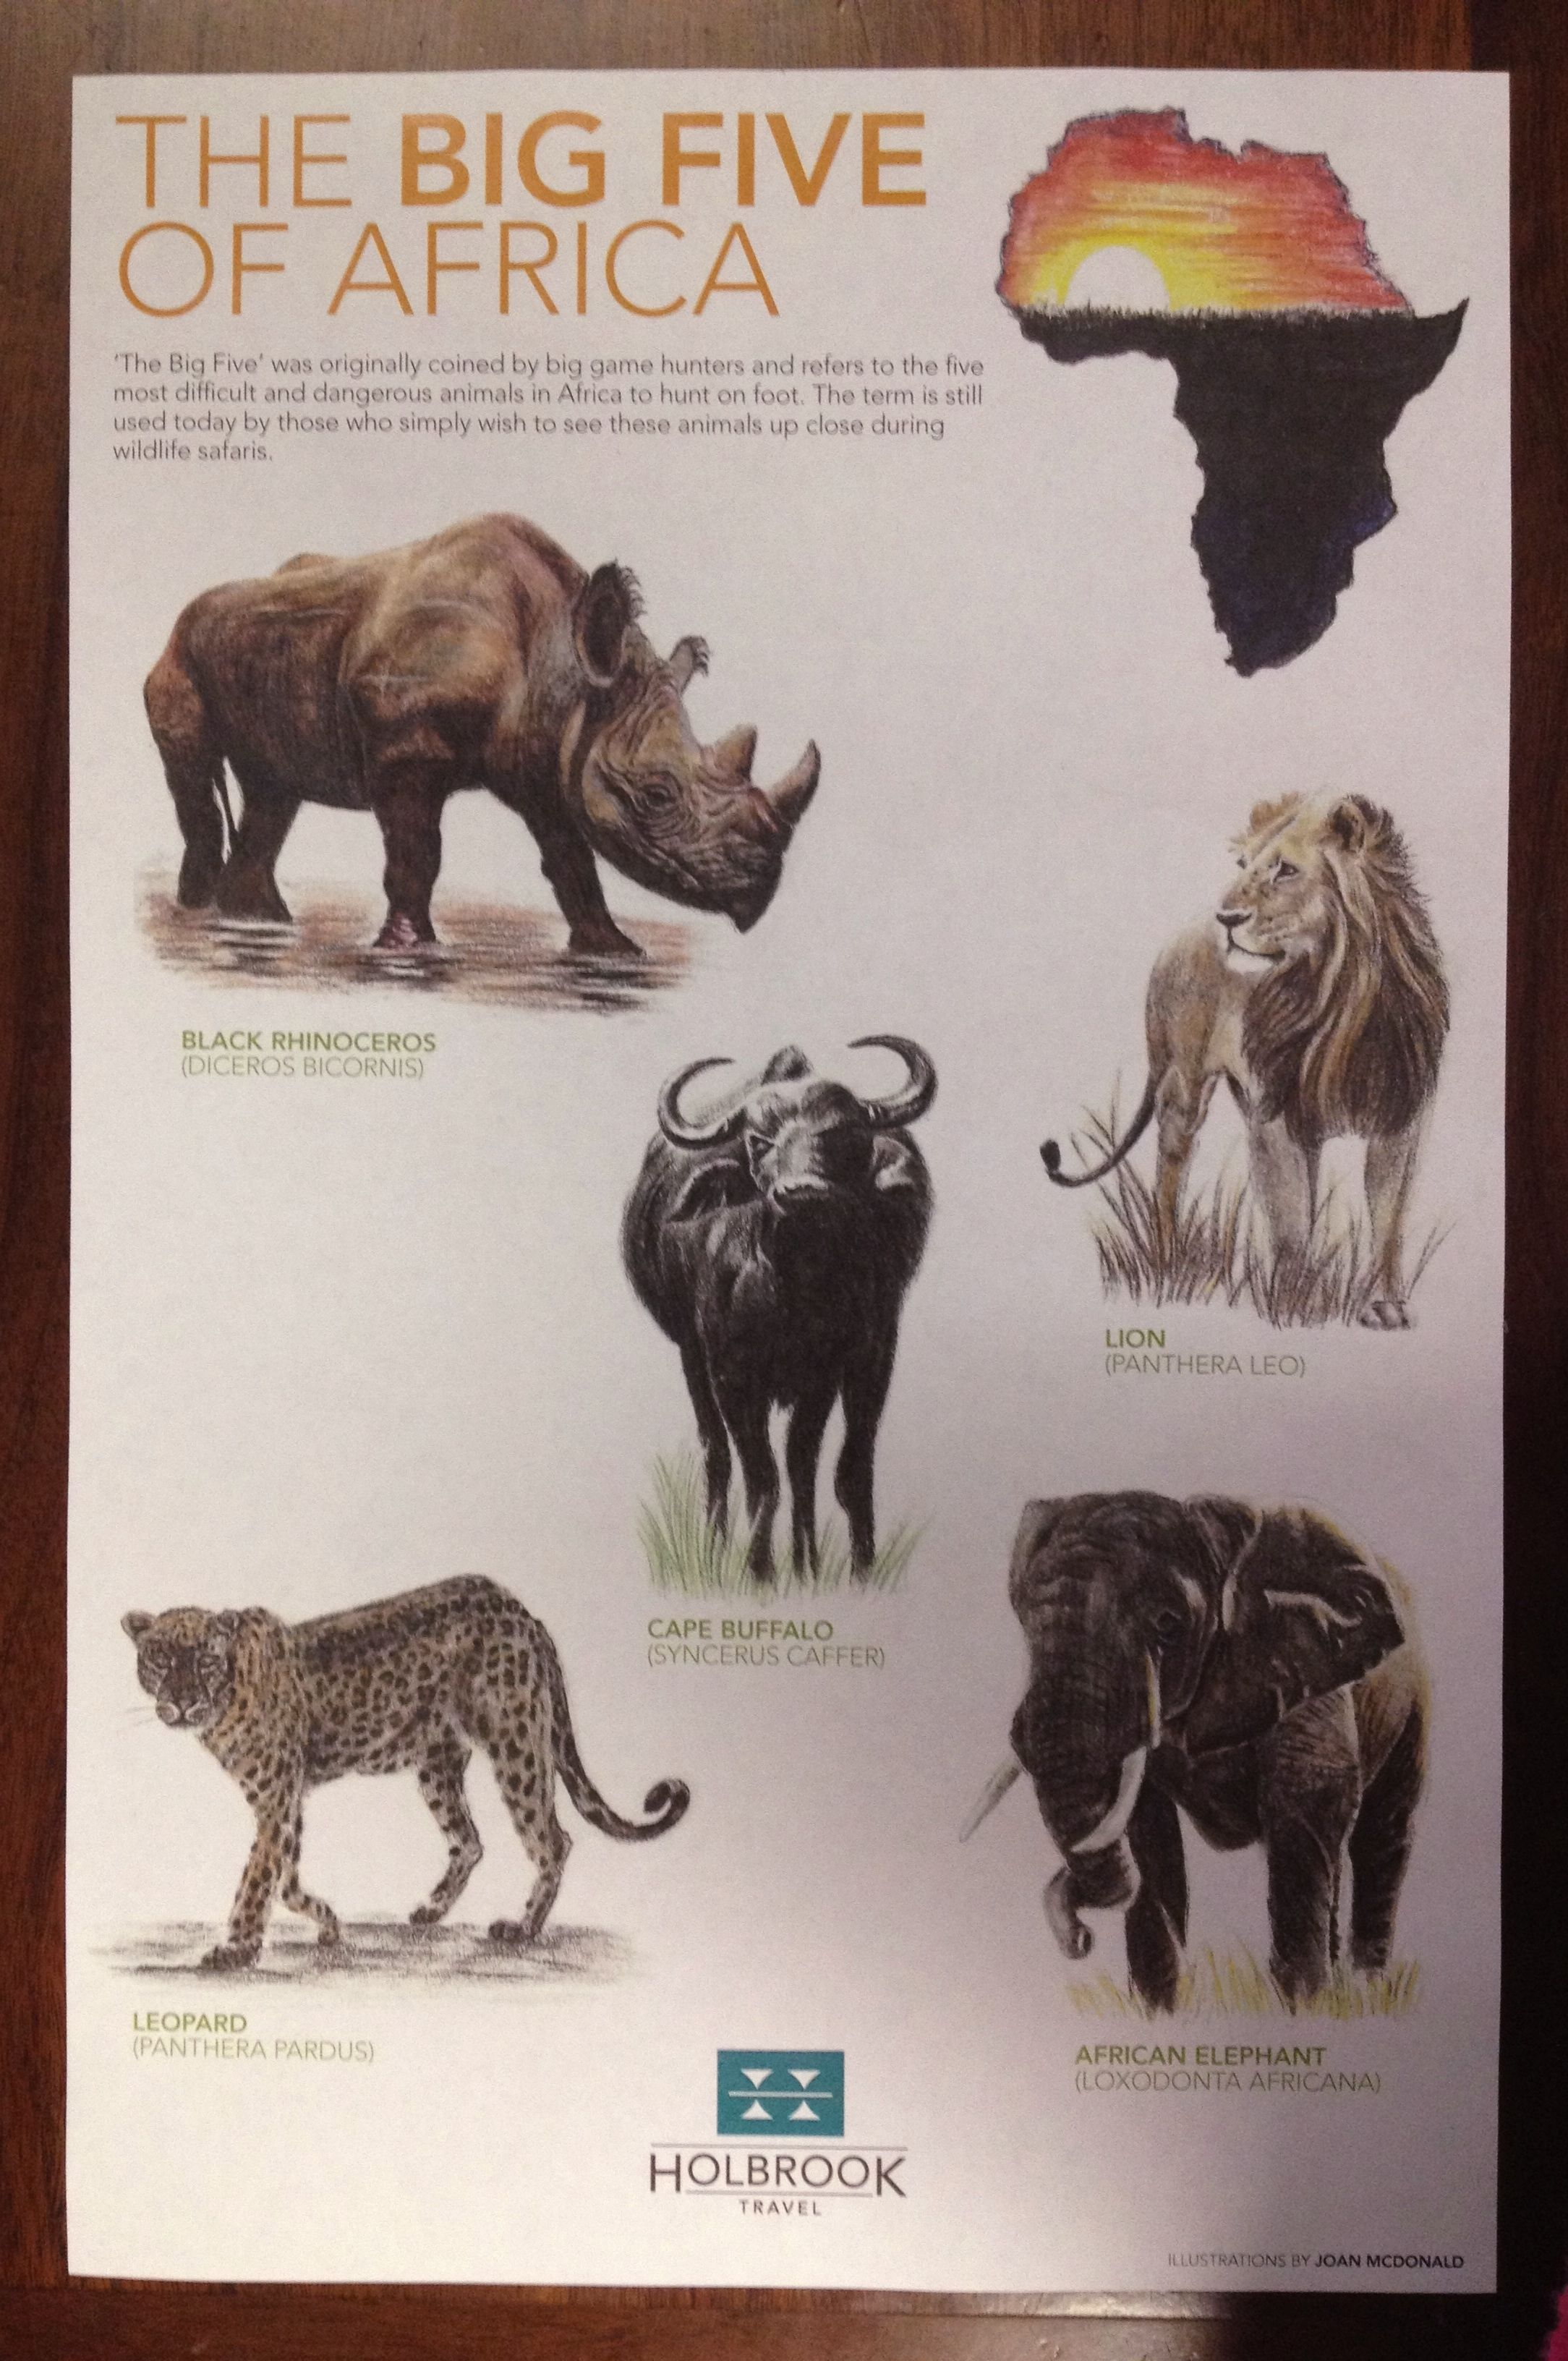 Africa's Big 5 Game Animals (With images) Africa animals